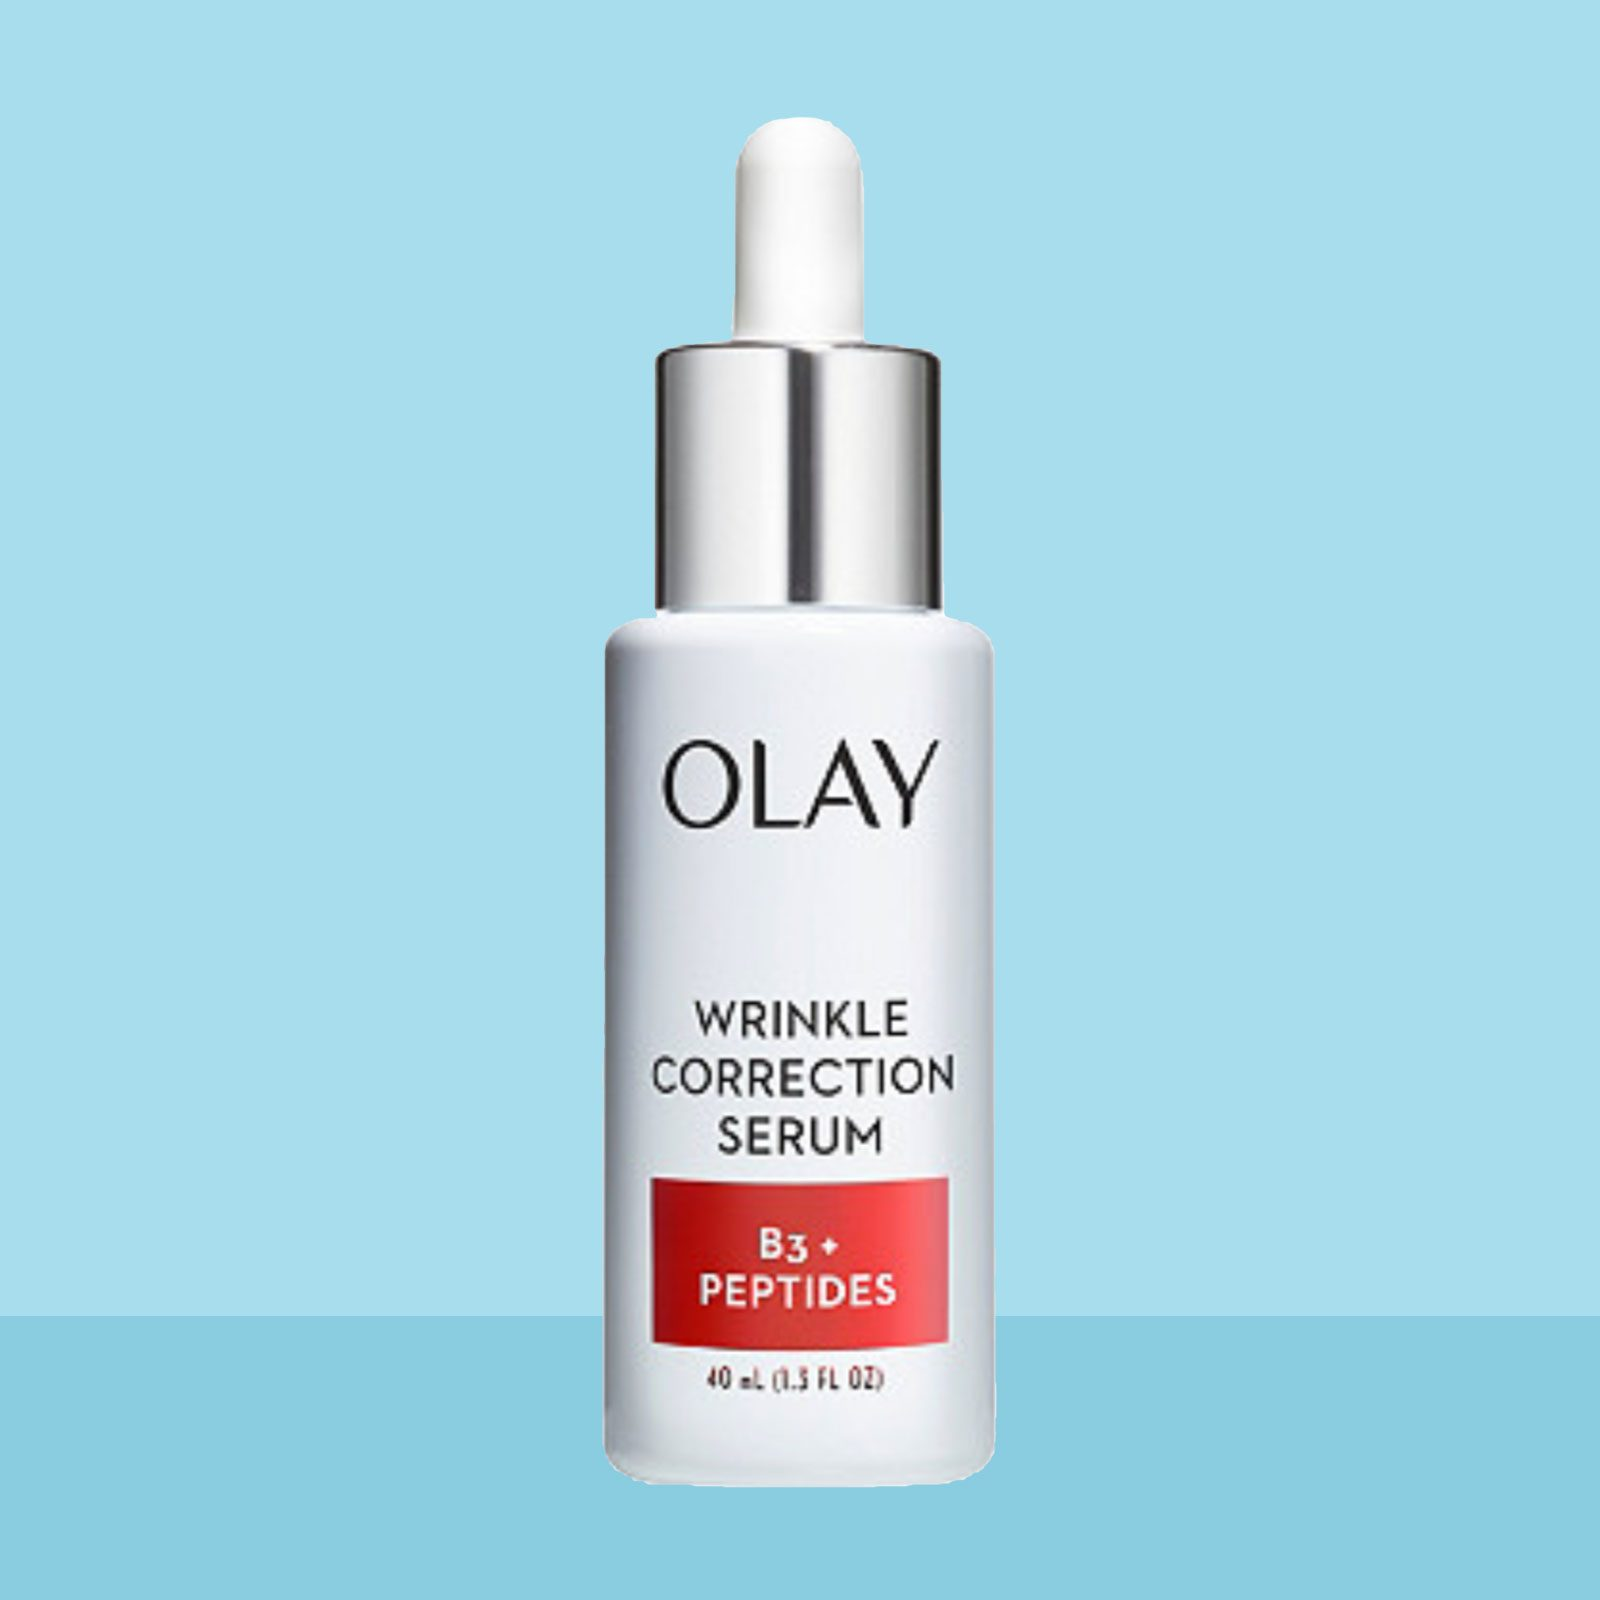 Best Face Serum with Niacinamide: Olay Wrinkle Correction Serum with Vitamin B3+ Collagen Peptides